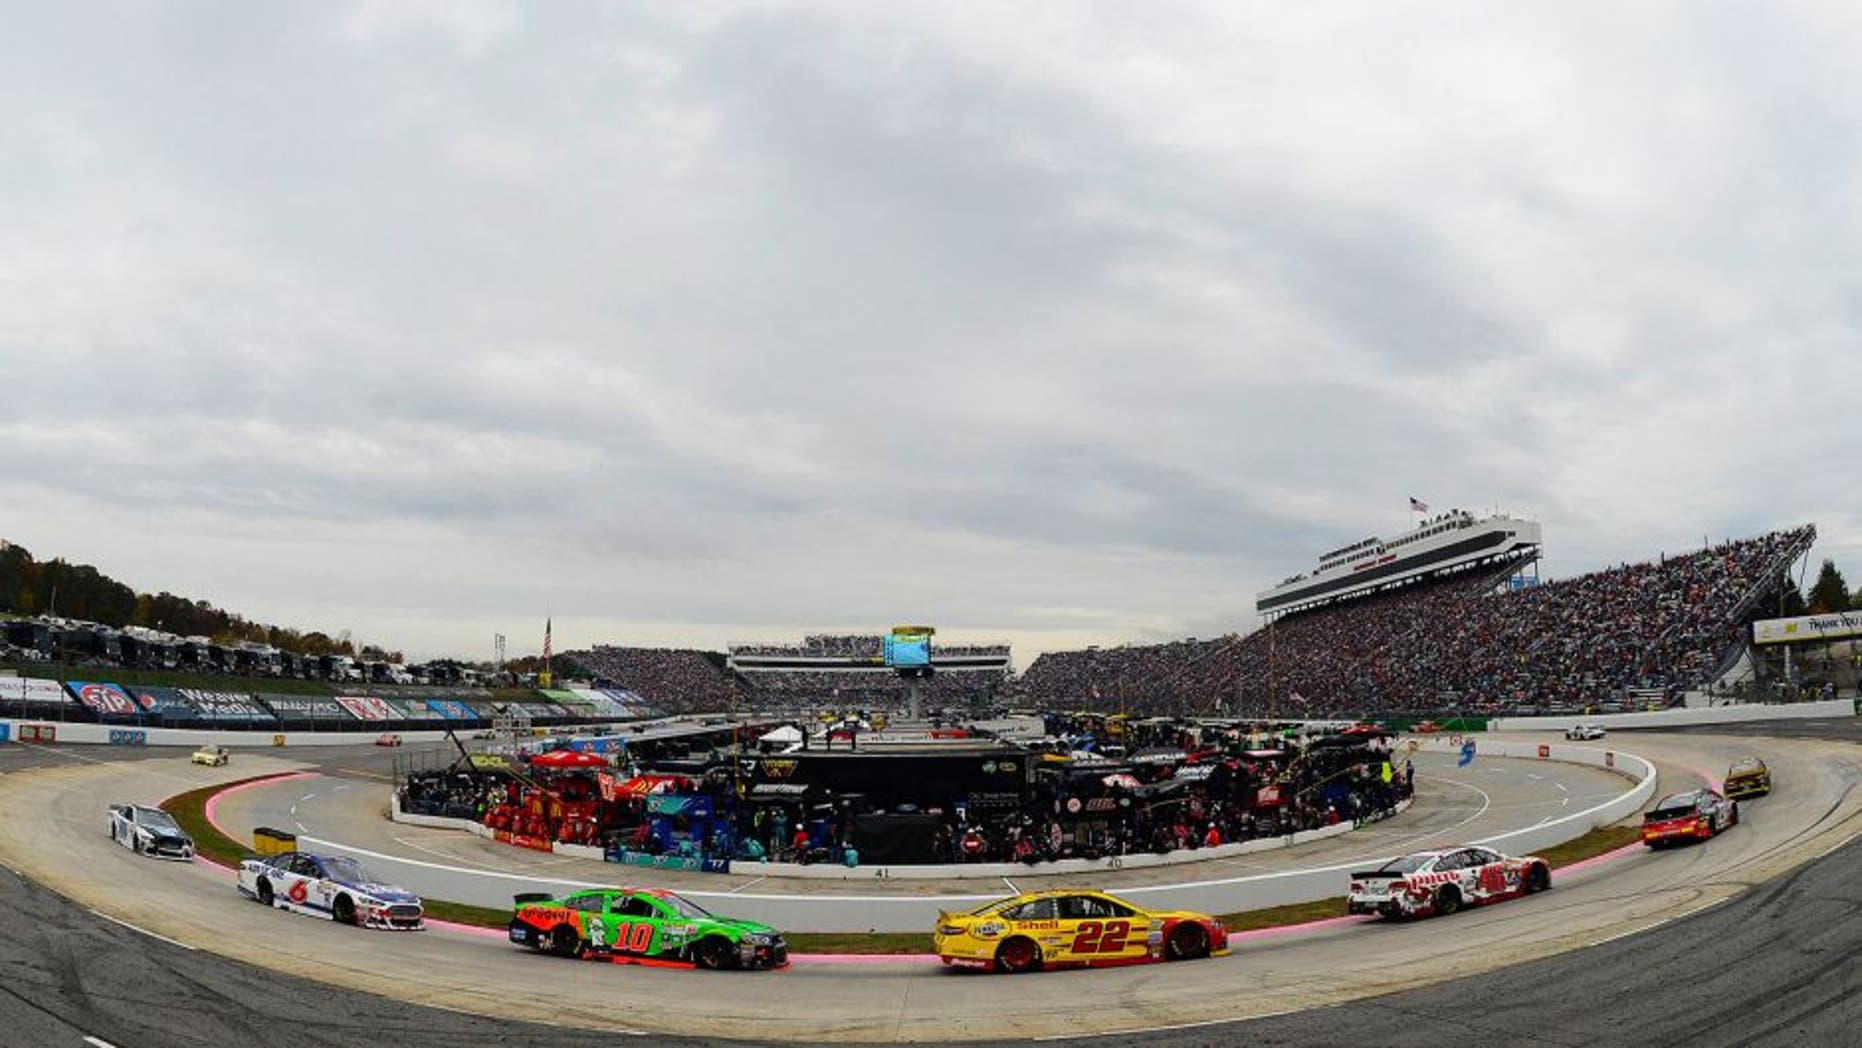 MARTINSVILLE, VA - NOVEMBER 01: A view of cars racing during the NASCAR Sprint Cup Series Goody's Headache Relief Shot 500 at Martinsville Speedway on November 1, 2015 in Martinsville, Virginia. (Photo by Robert Laberge/Getty Images)